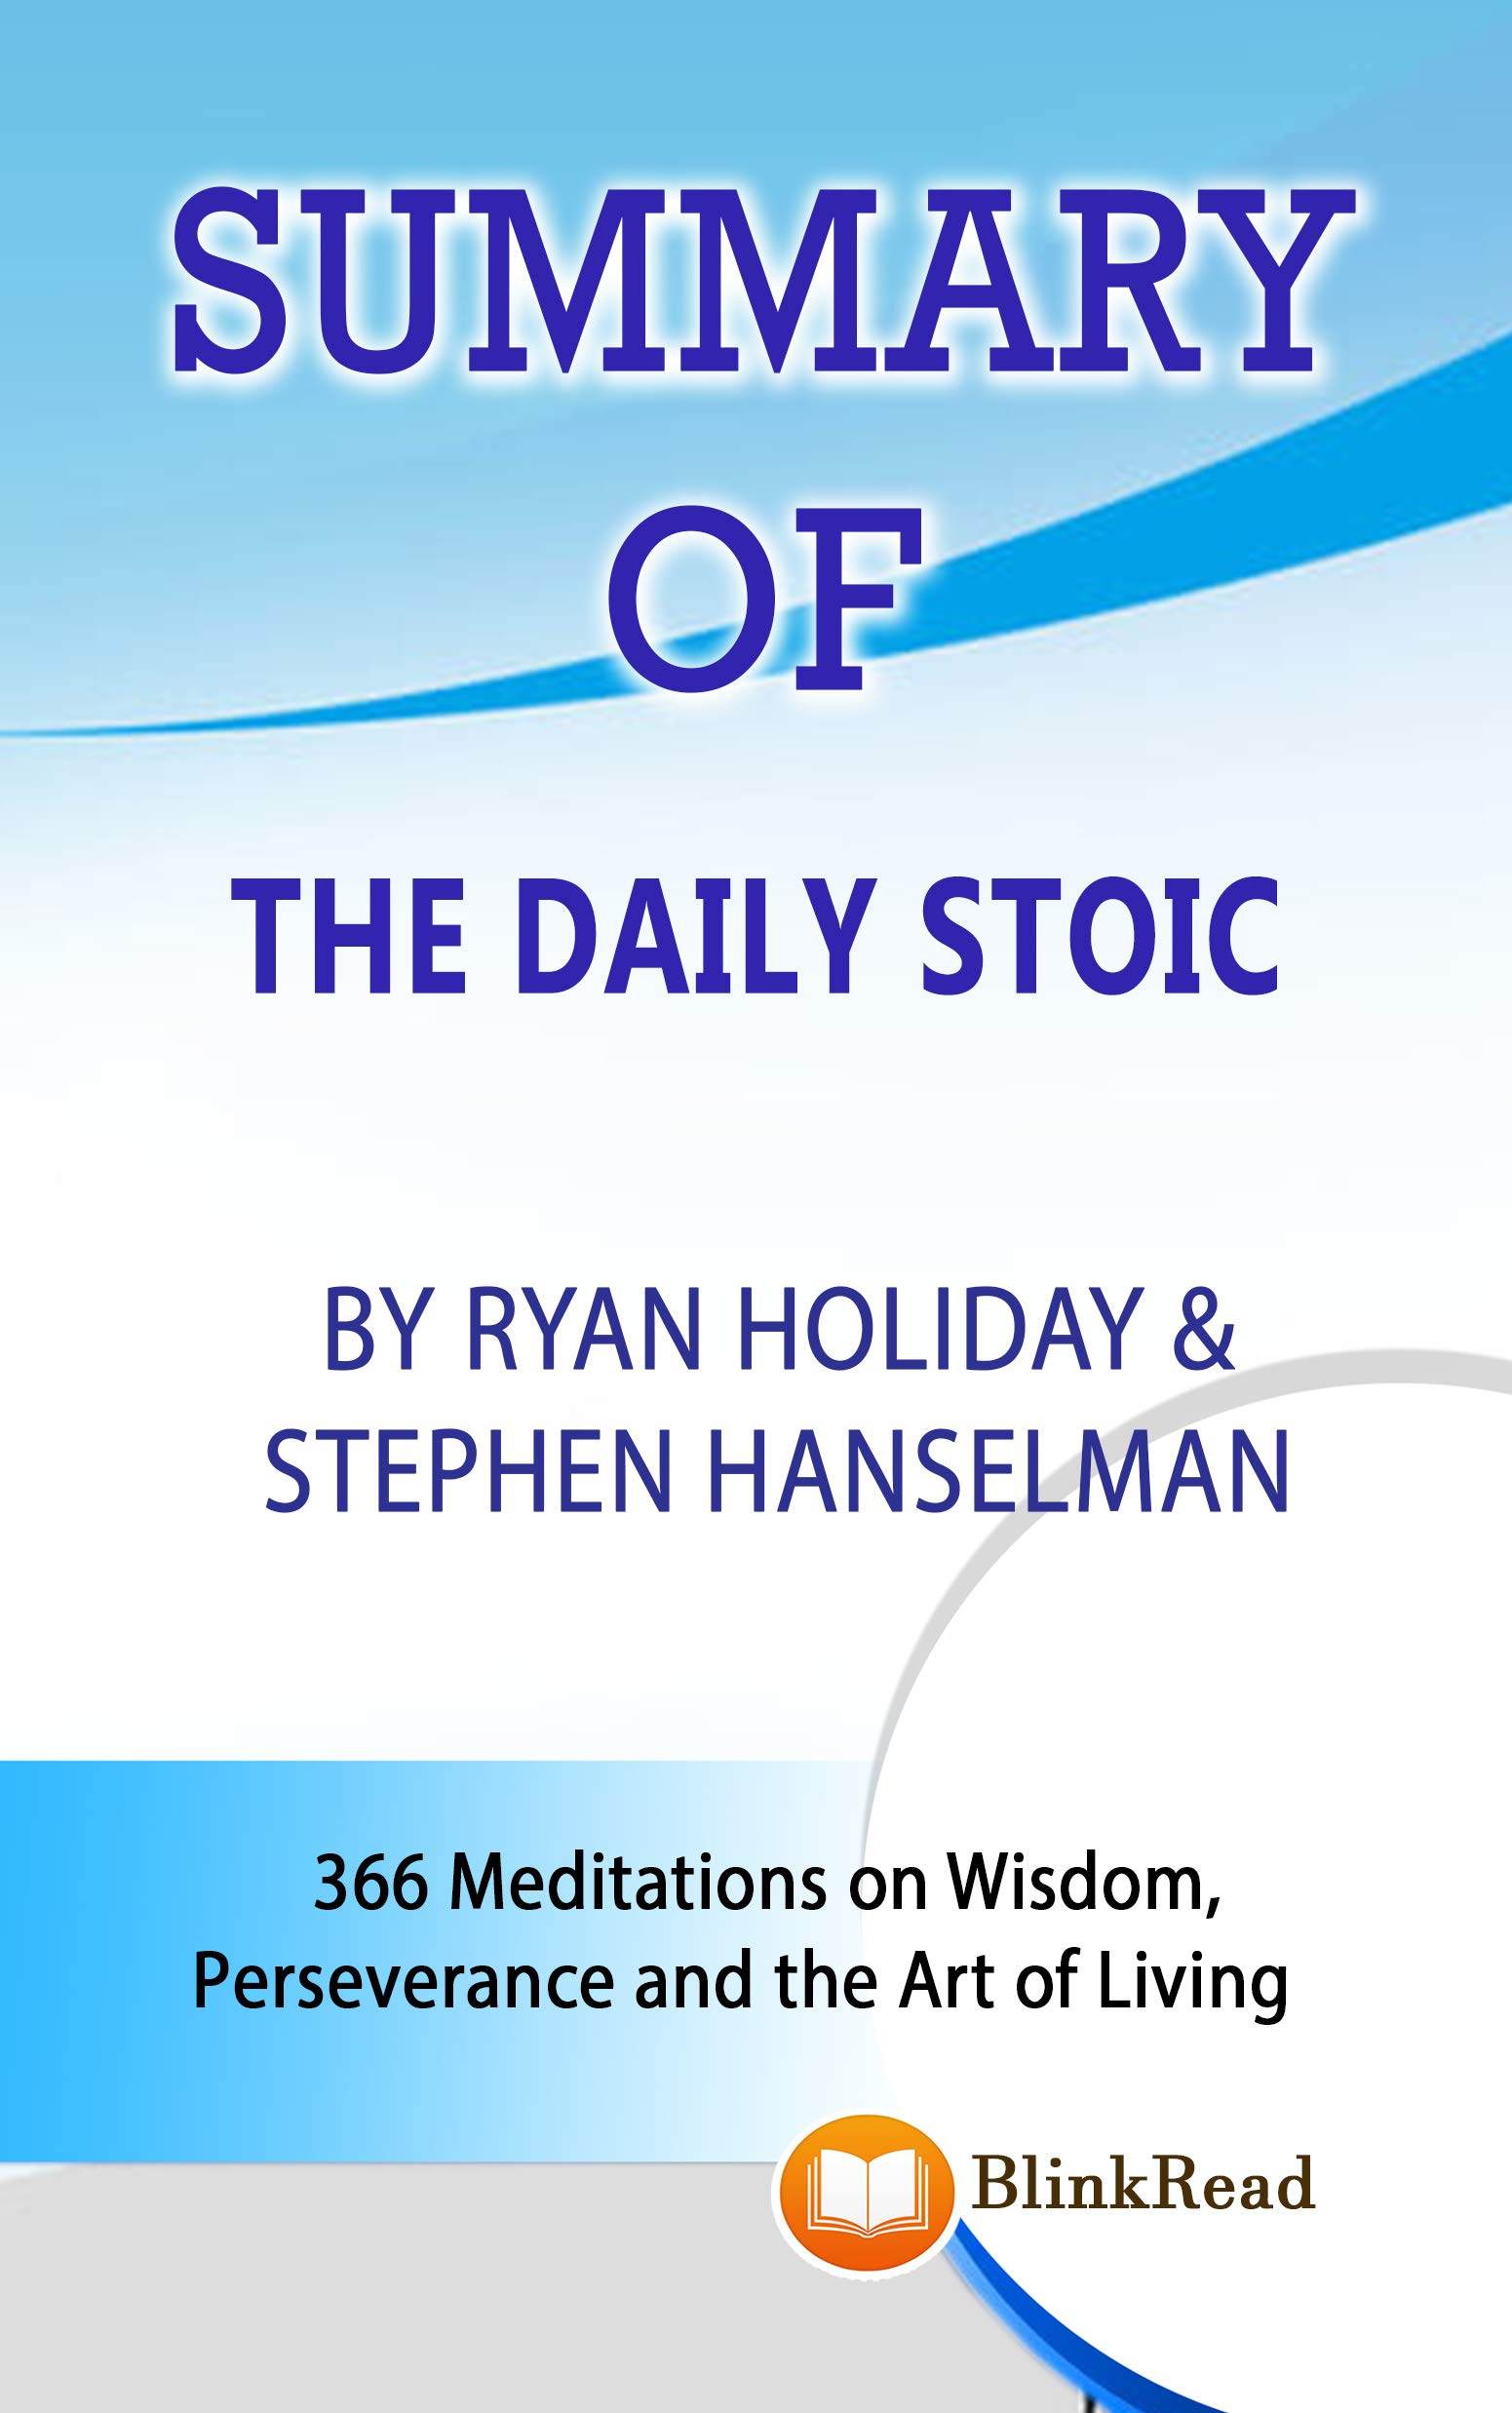 SUMMARY of The Daily Stoic By Ryan Holiday & Stephen Hanselman: 366 Meditations on Wisdom, Perseverance and the Art of Living